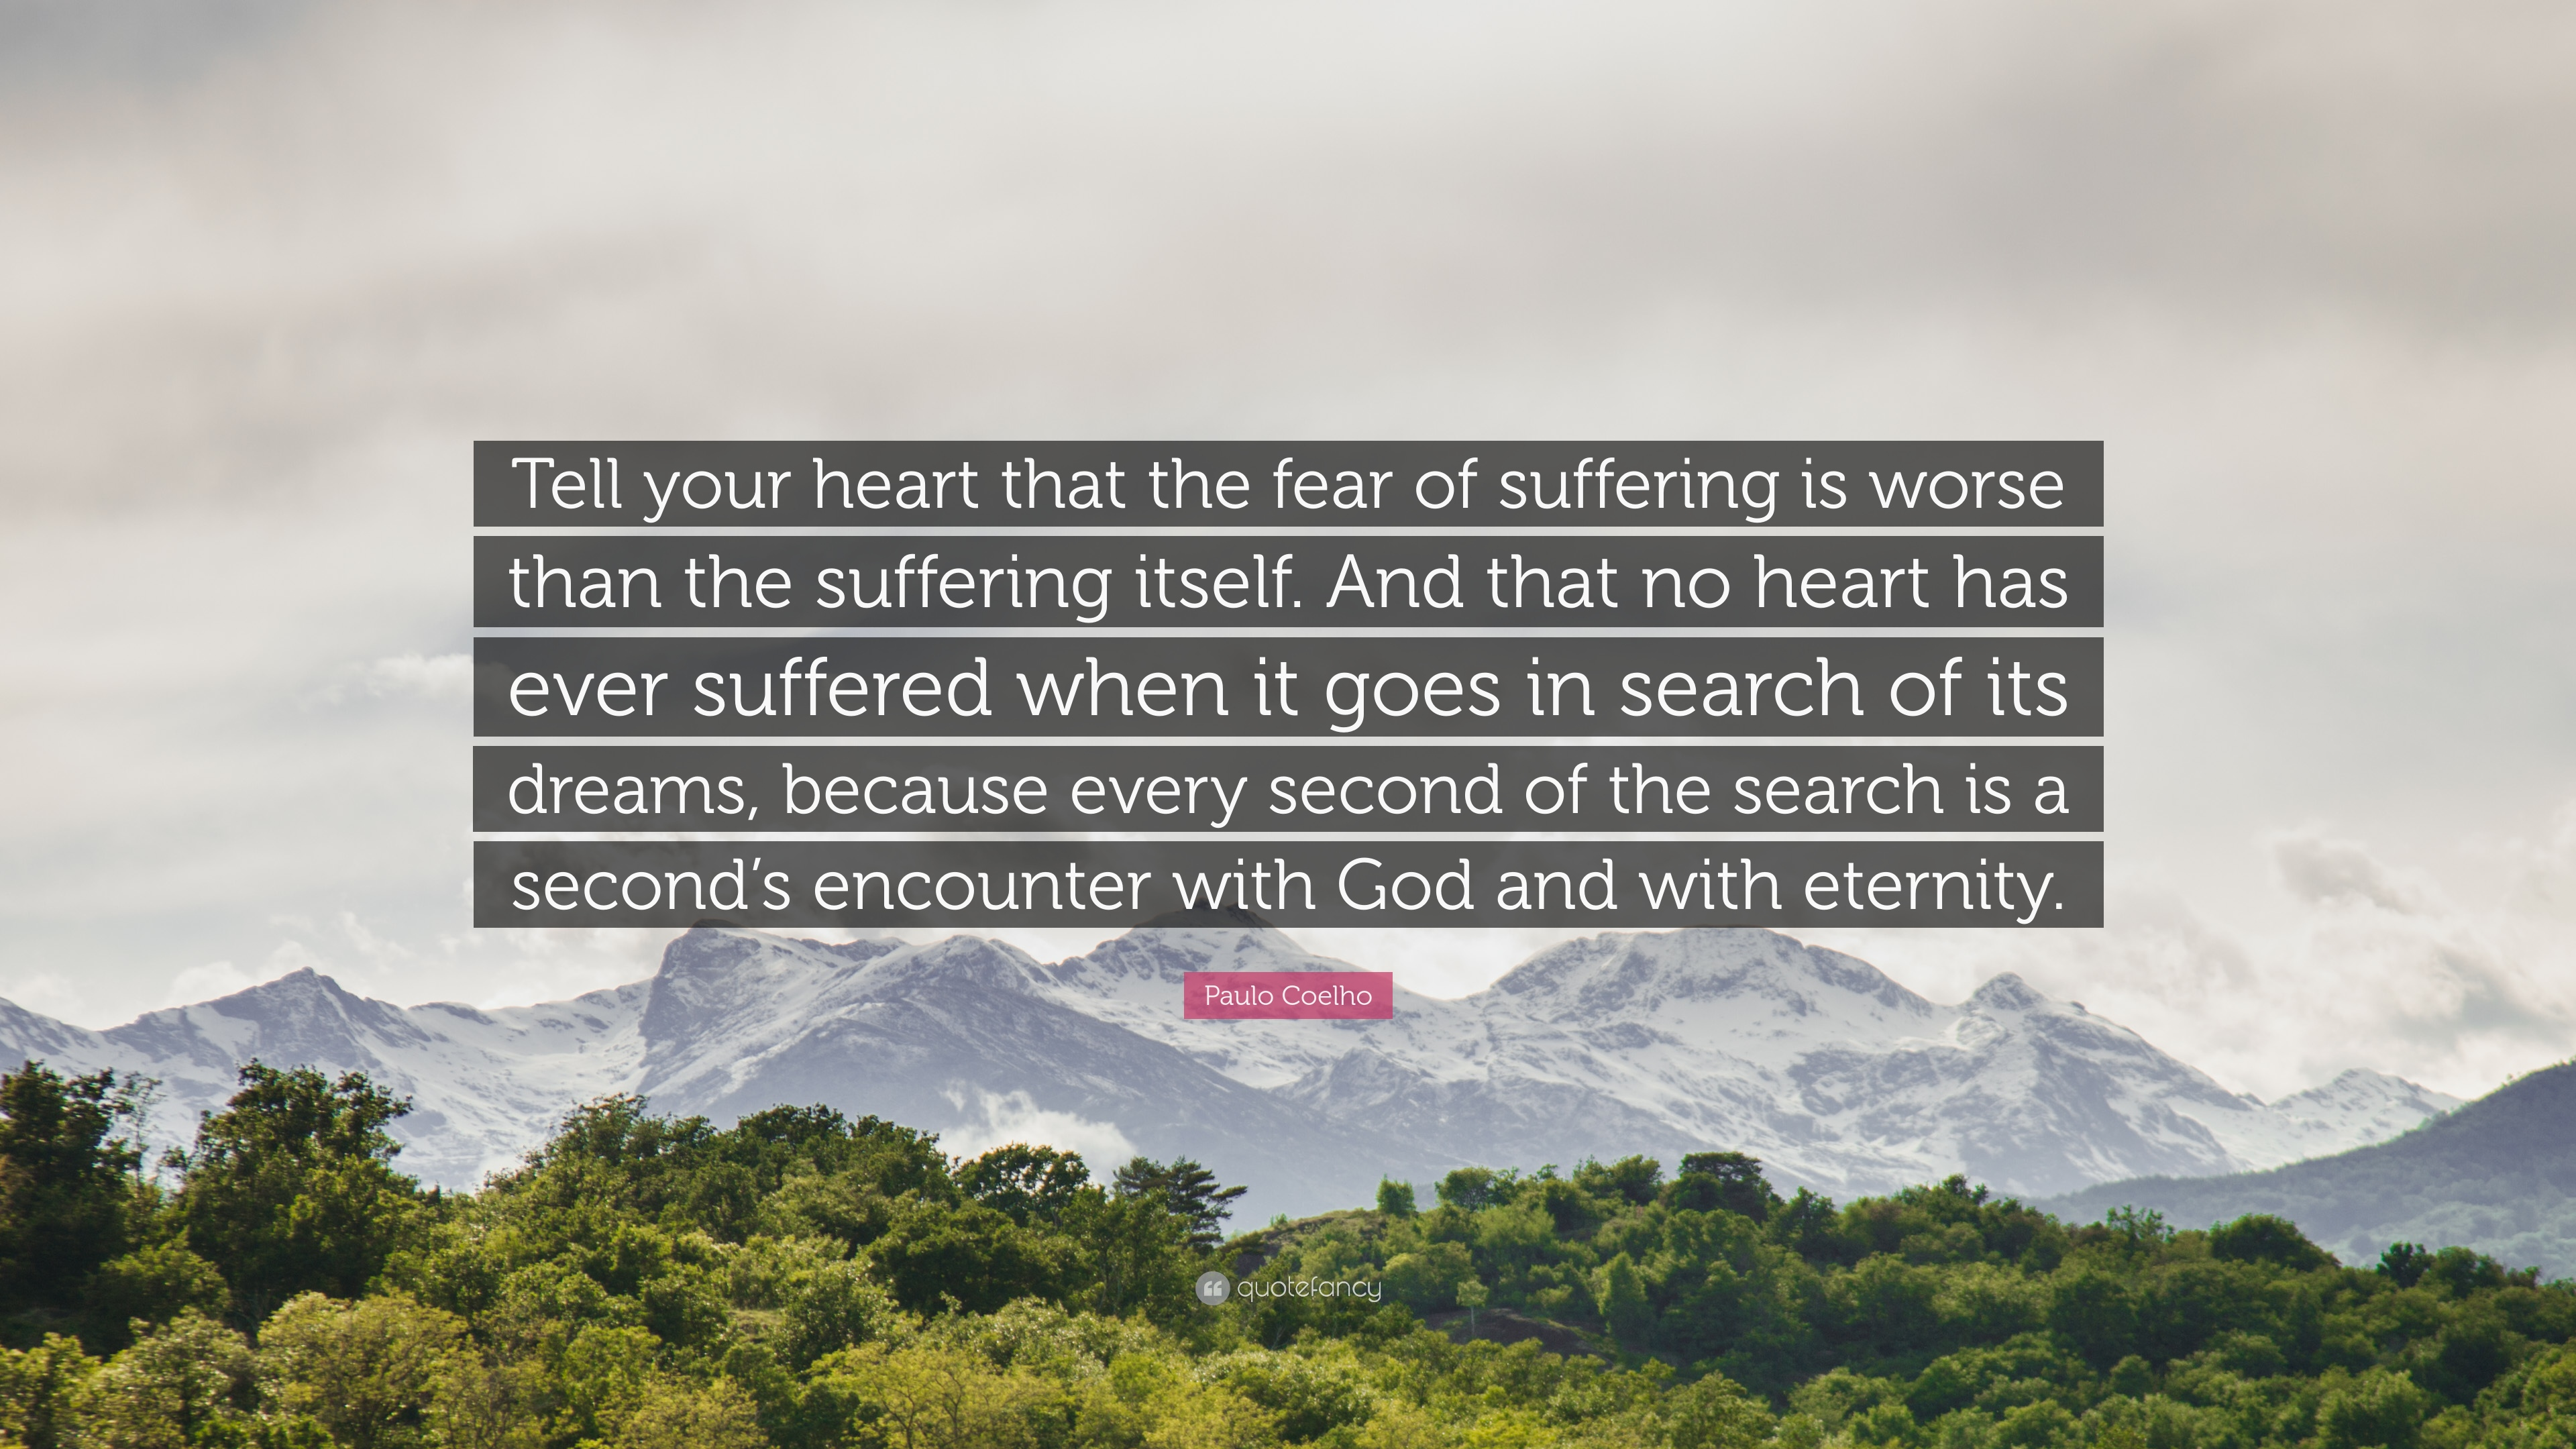 """Image result for """"Tell your heart that the fear of suffering is worse than the suffering itself. And that no heart has ever suffered when it goes in search of its dreams, because every second of the search is a second's encounter with God and with eternity."""""""